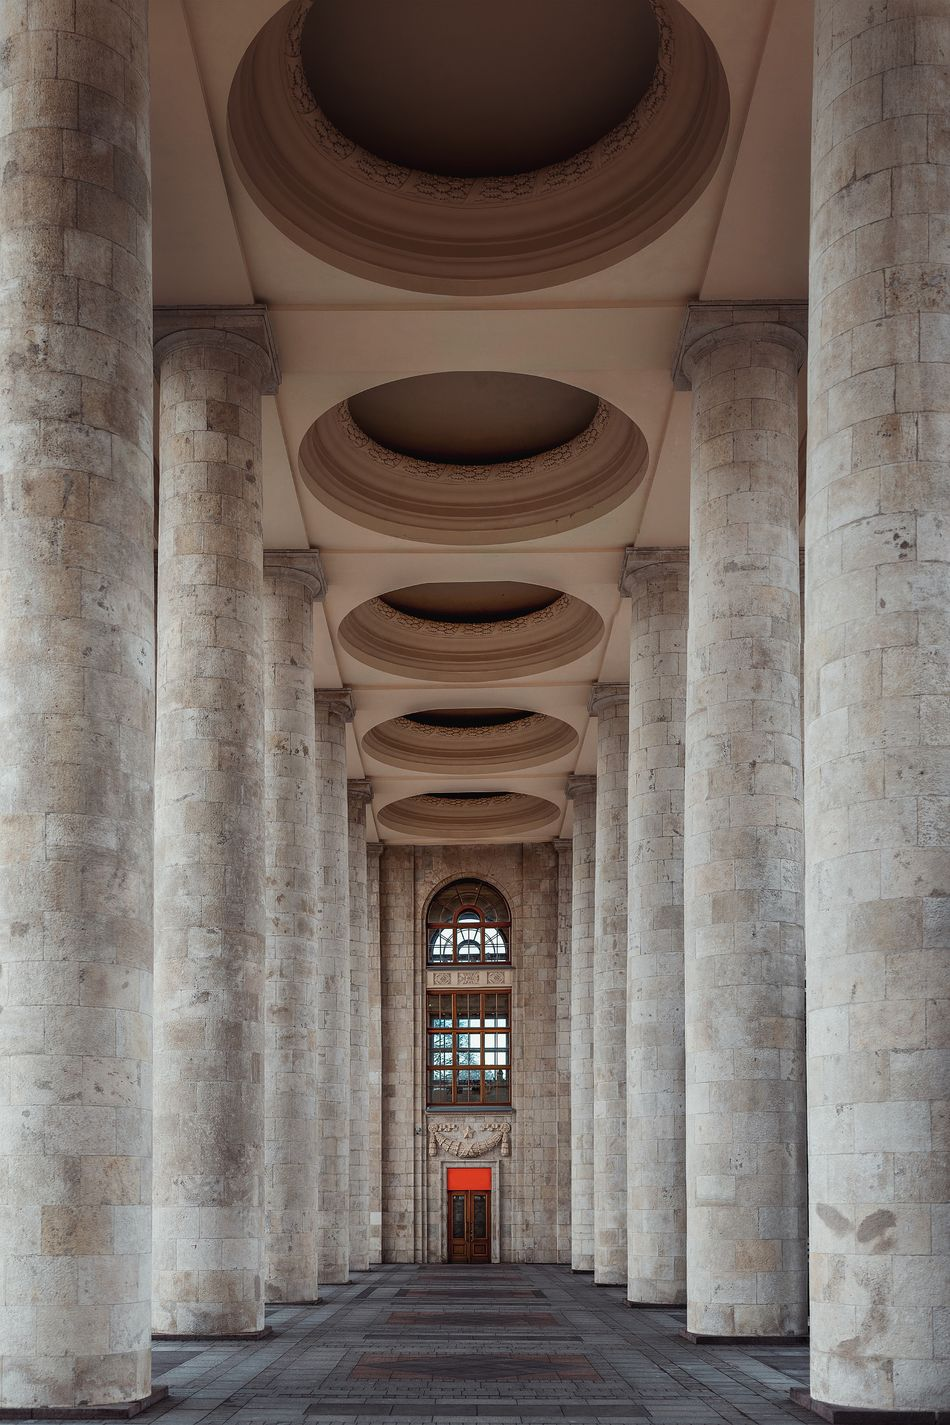 Architectural Column Architecture Built Structure History The Way Forward Arch Indoors  No People Travel Destinations Day Moscow